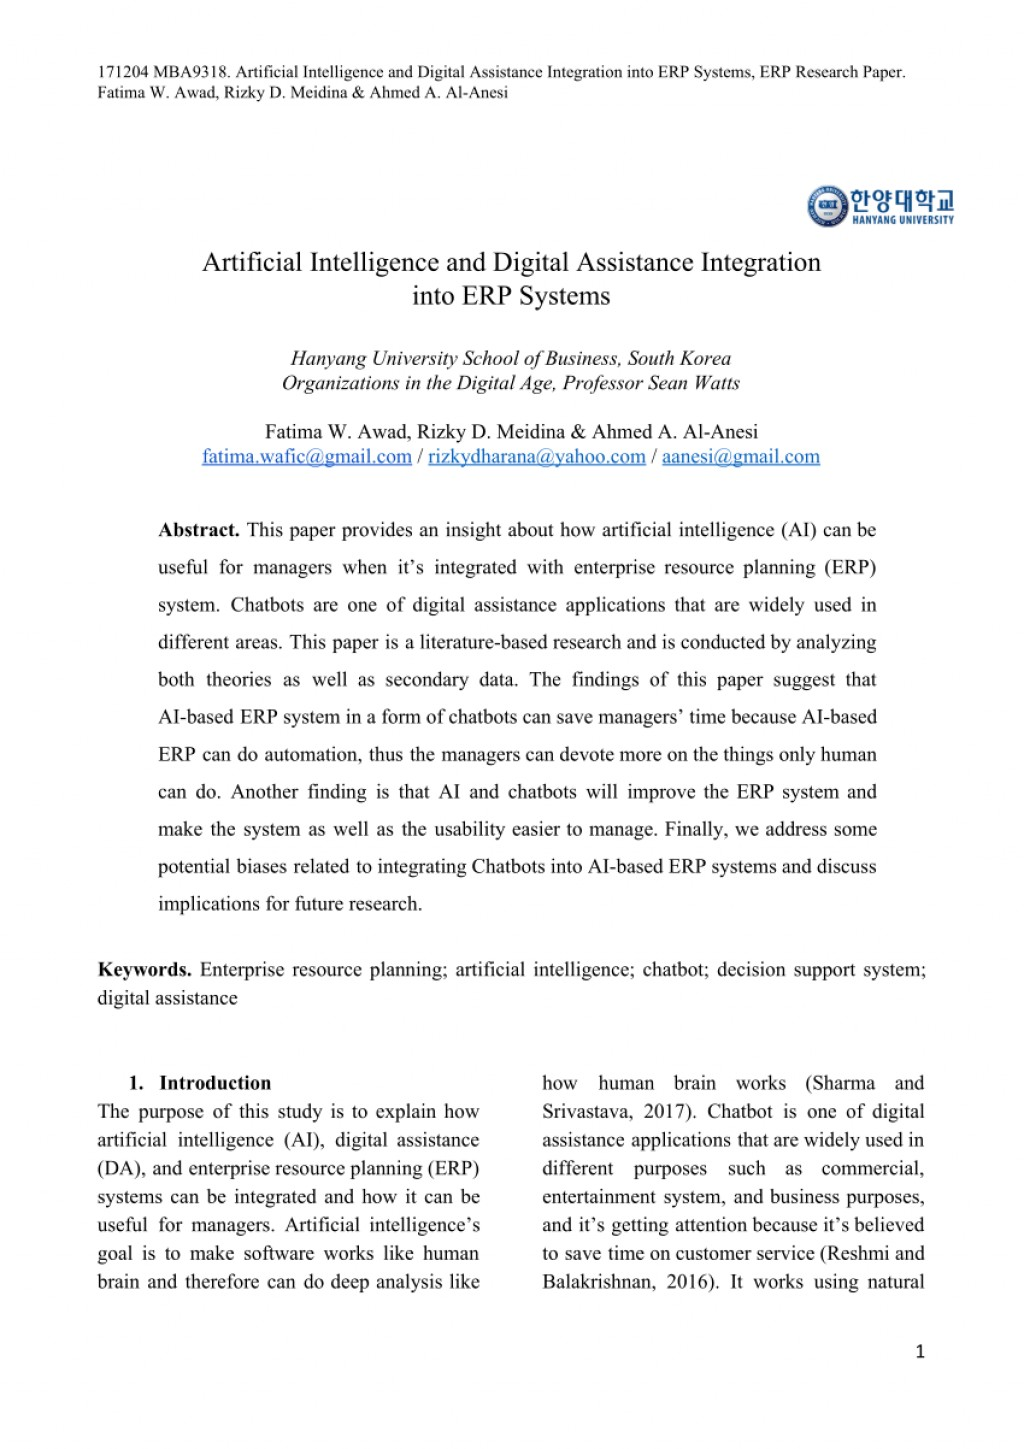 001 Research Paper Artificial Intelligence Papers Unique 2017 On Pdf Large